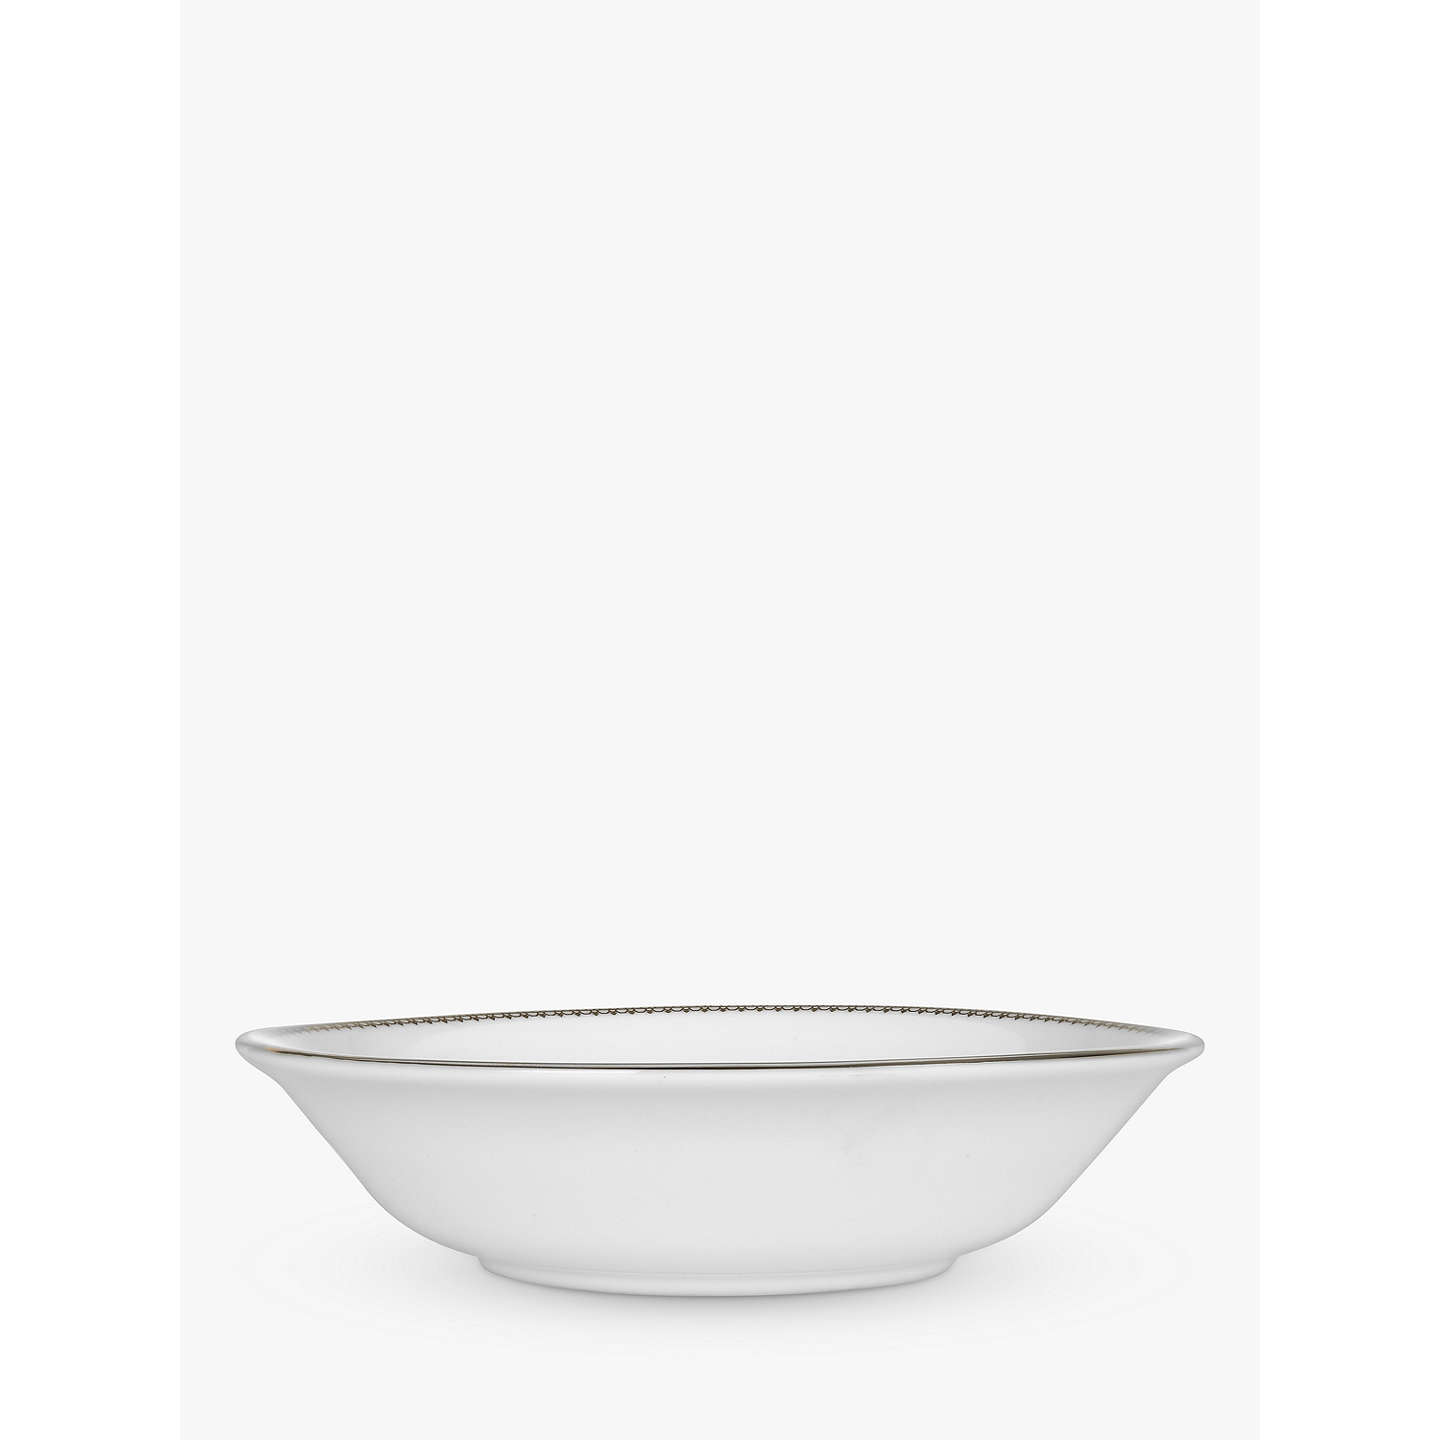 BuyVera Wang for Wedgwood Lace 15cm Cereal Bowl Online at johnlewis.com